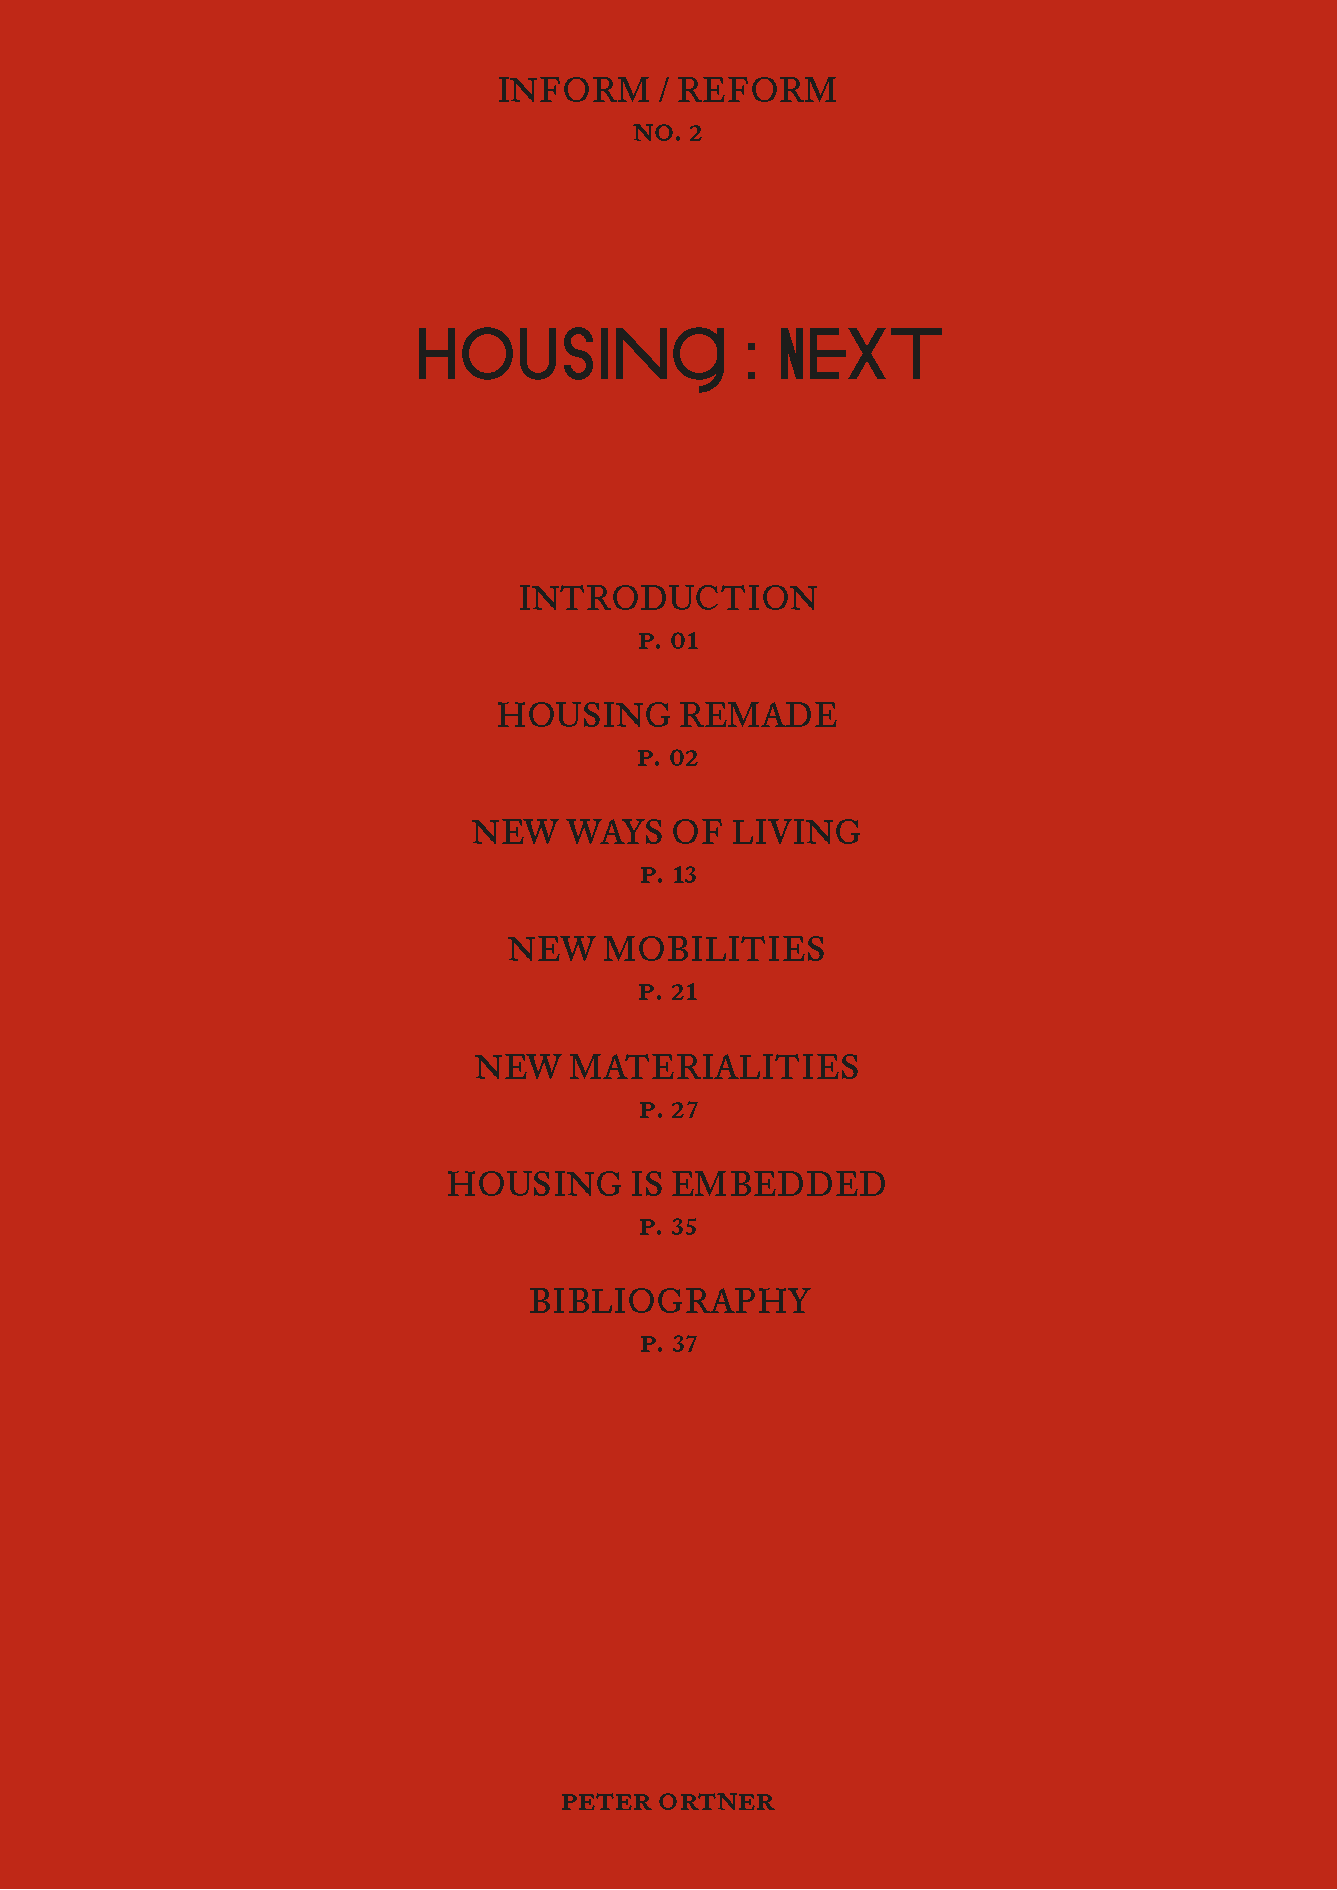 Inform/Reform Series; Issue No 2, Housing: Next